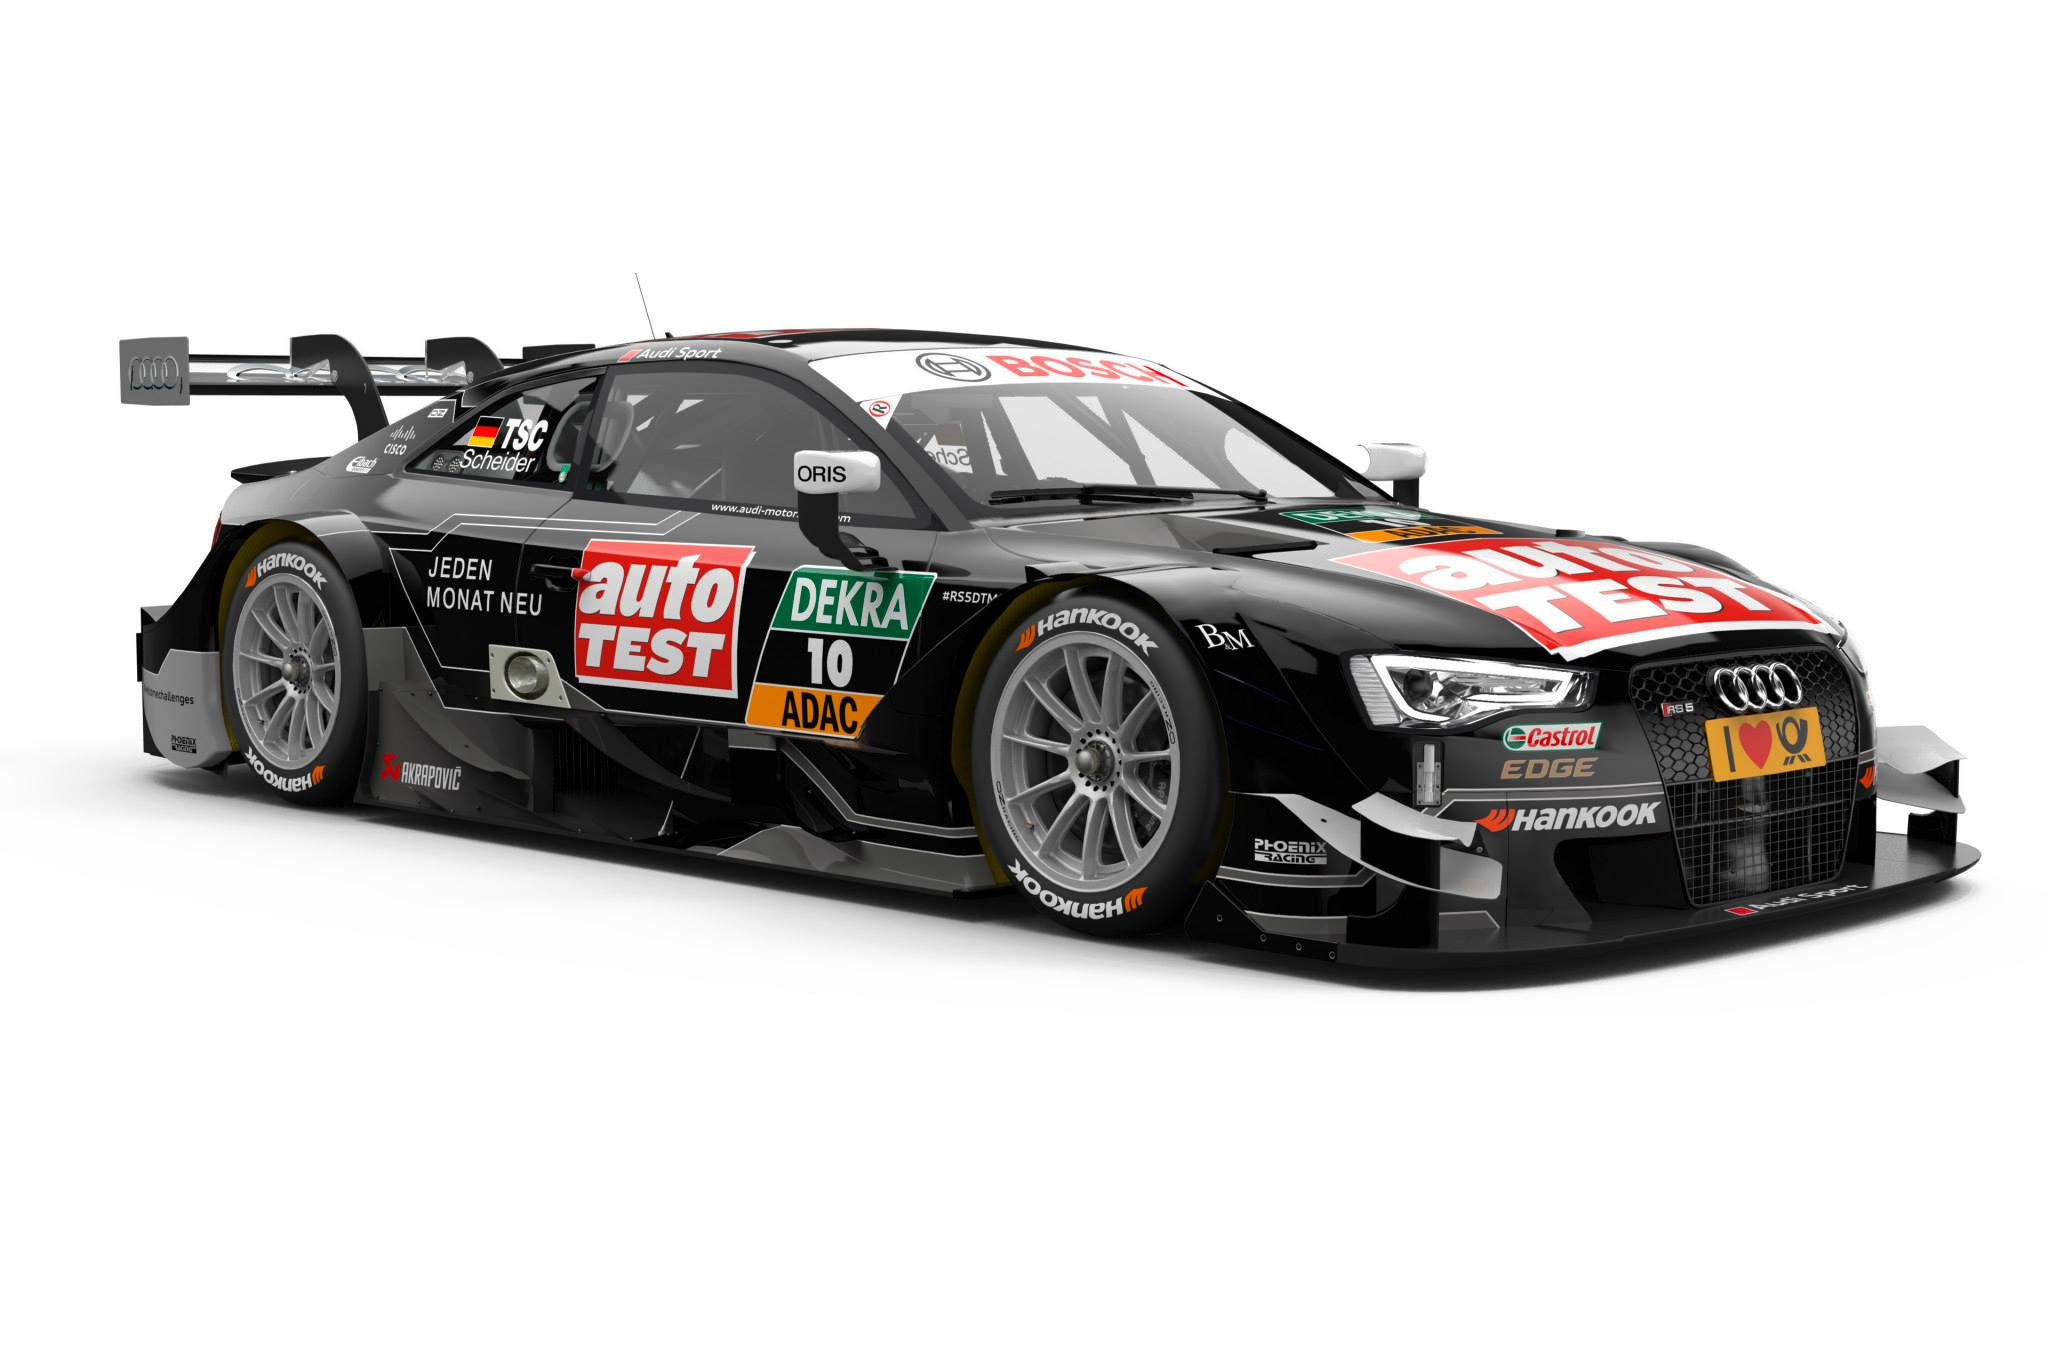 2015 Audi RS5 DTM - Timo Scheider